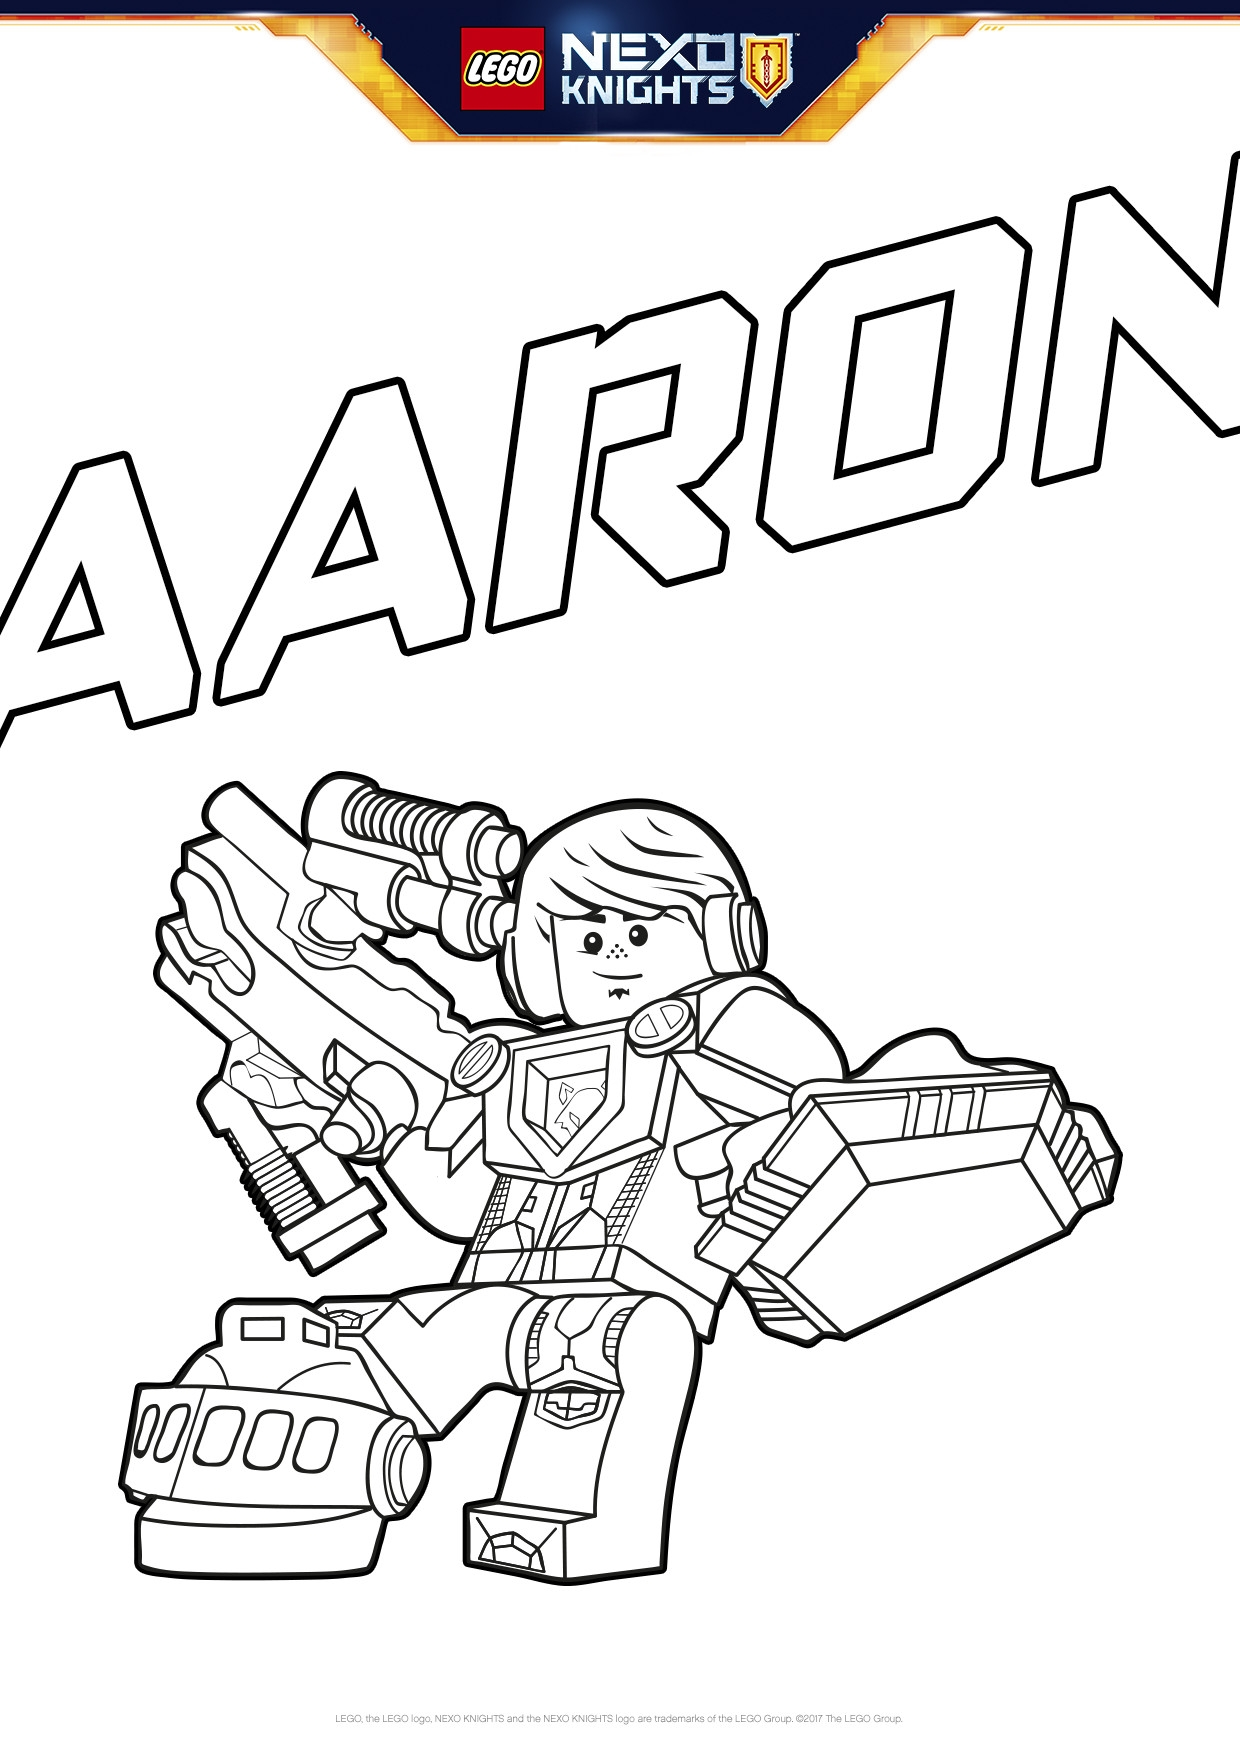 Lego Nexo Knights Ausmalbilder Gratis : 24 Nexo Knight Coloring Pages Images Free Coloring Pages Part 3